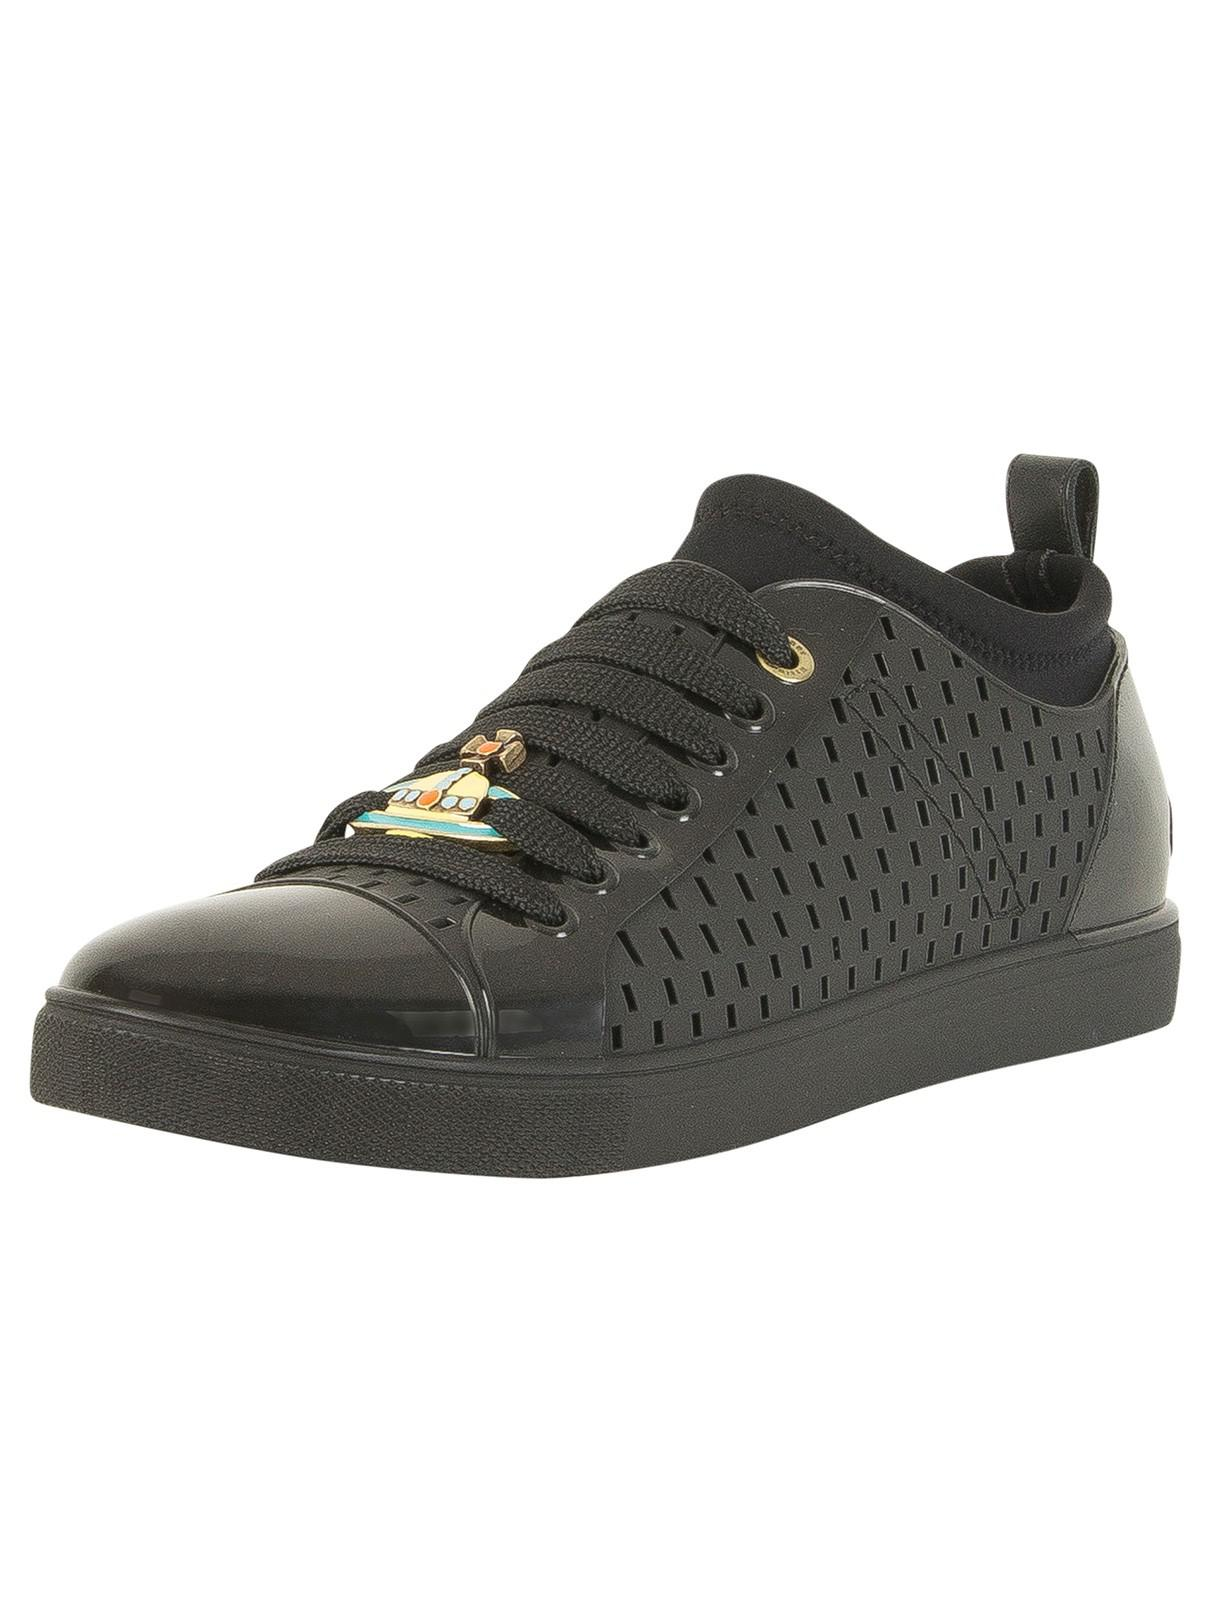 874ff6a9e5bc9 Vivienne Westwood Black Sneaker Orb Leather Trainers in Black for ...